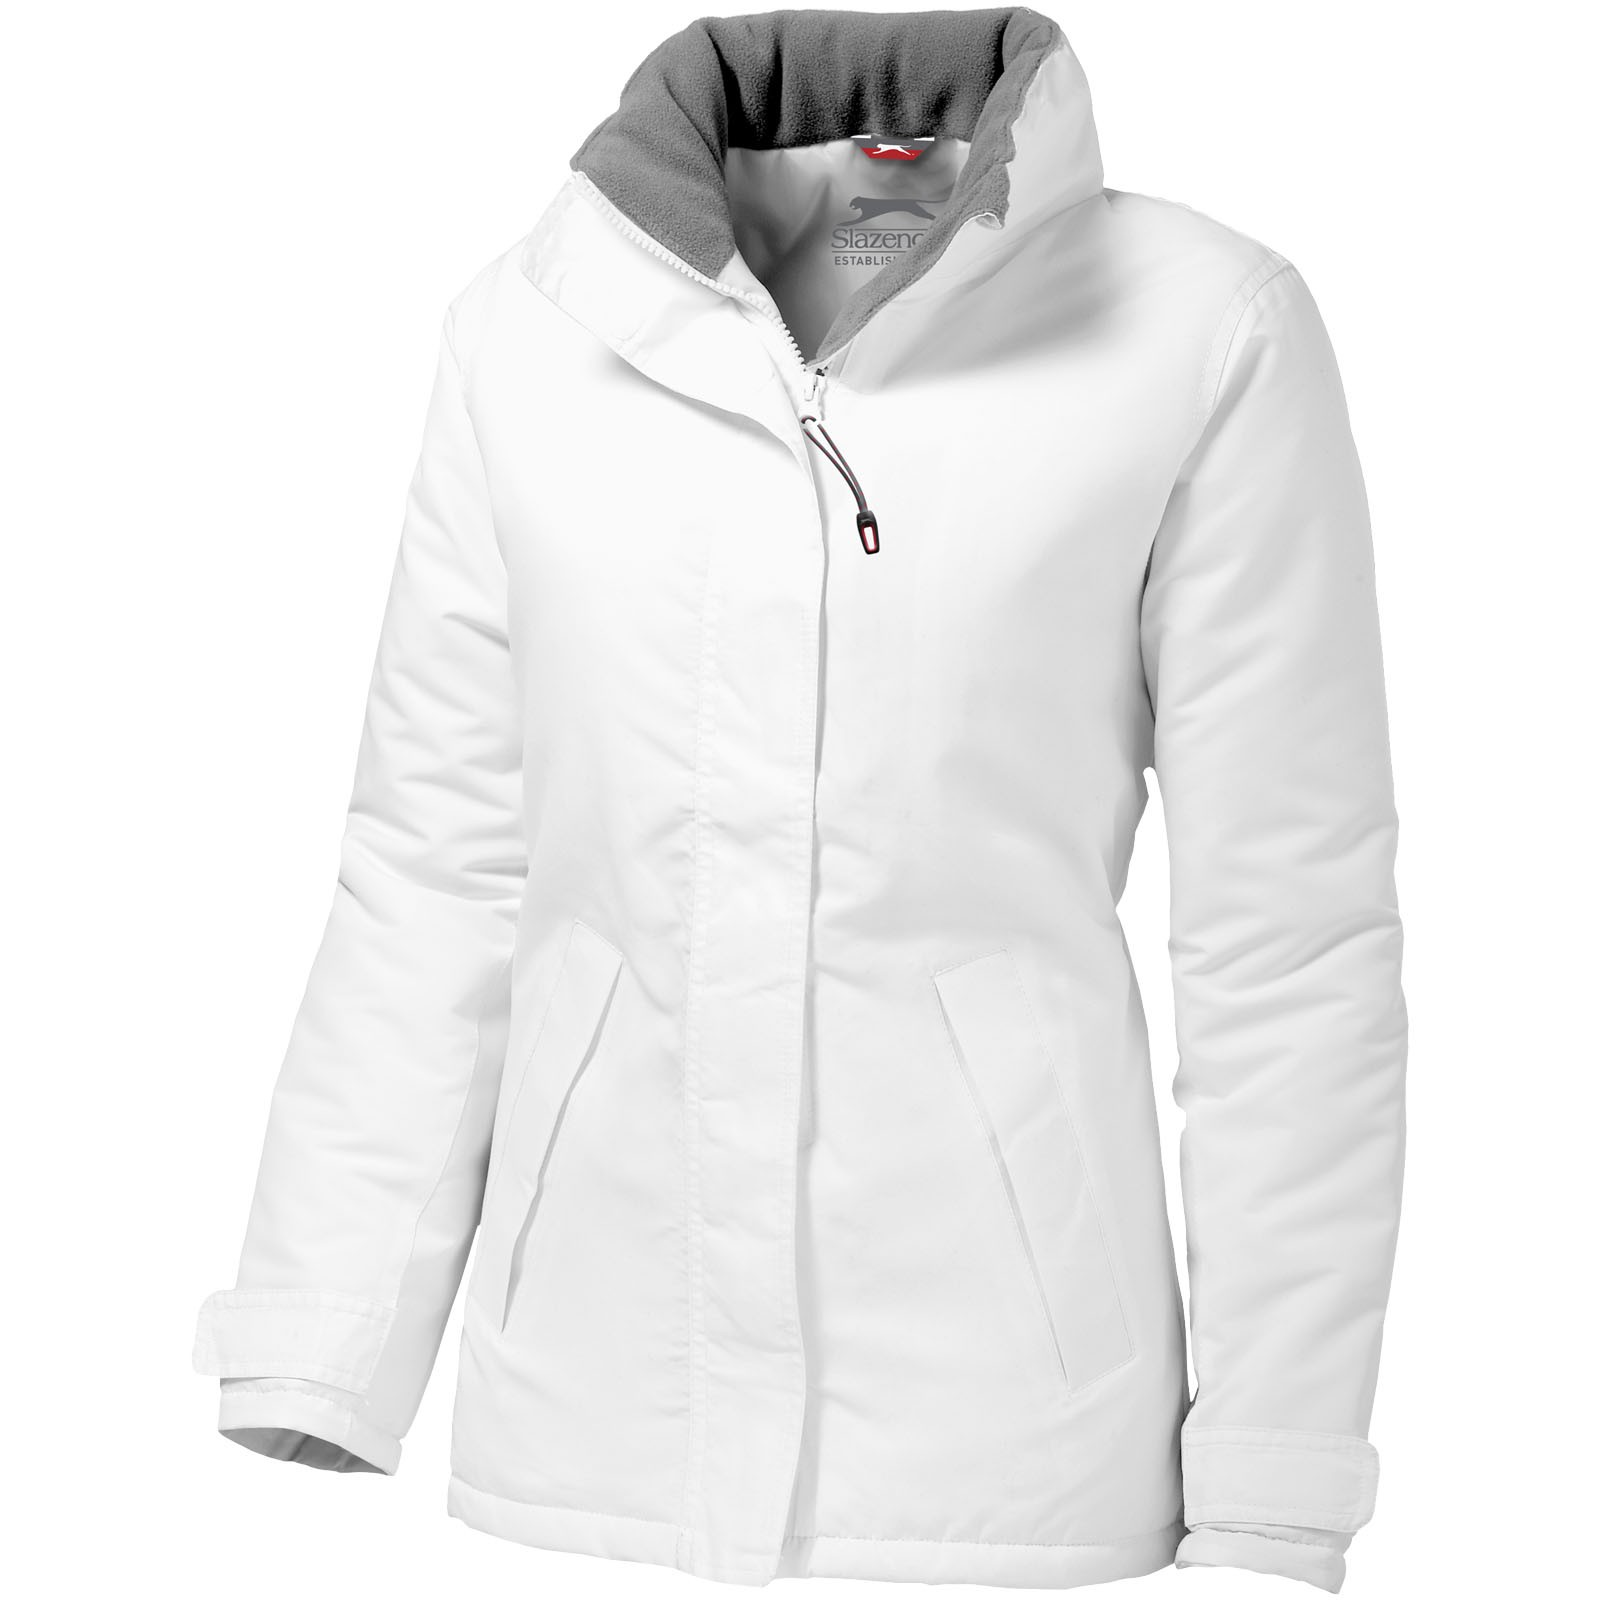 Under Spin ladies insulated jacket - White / XXL